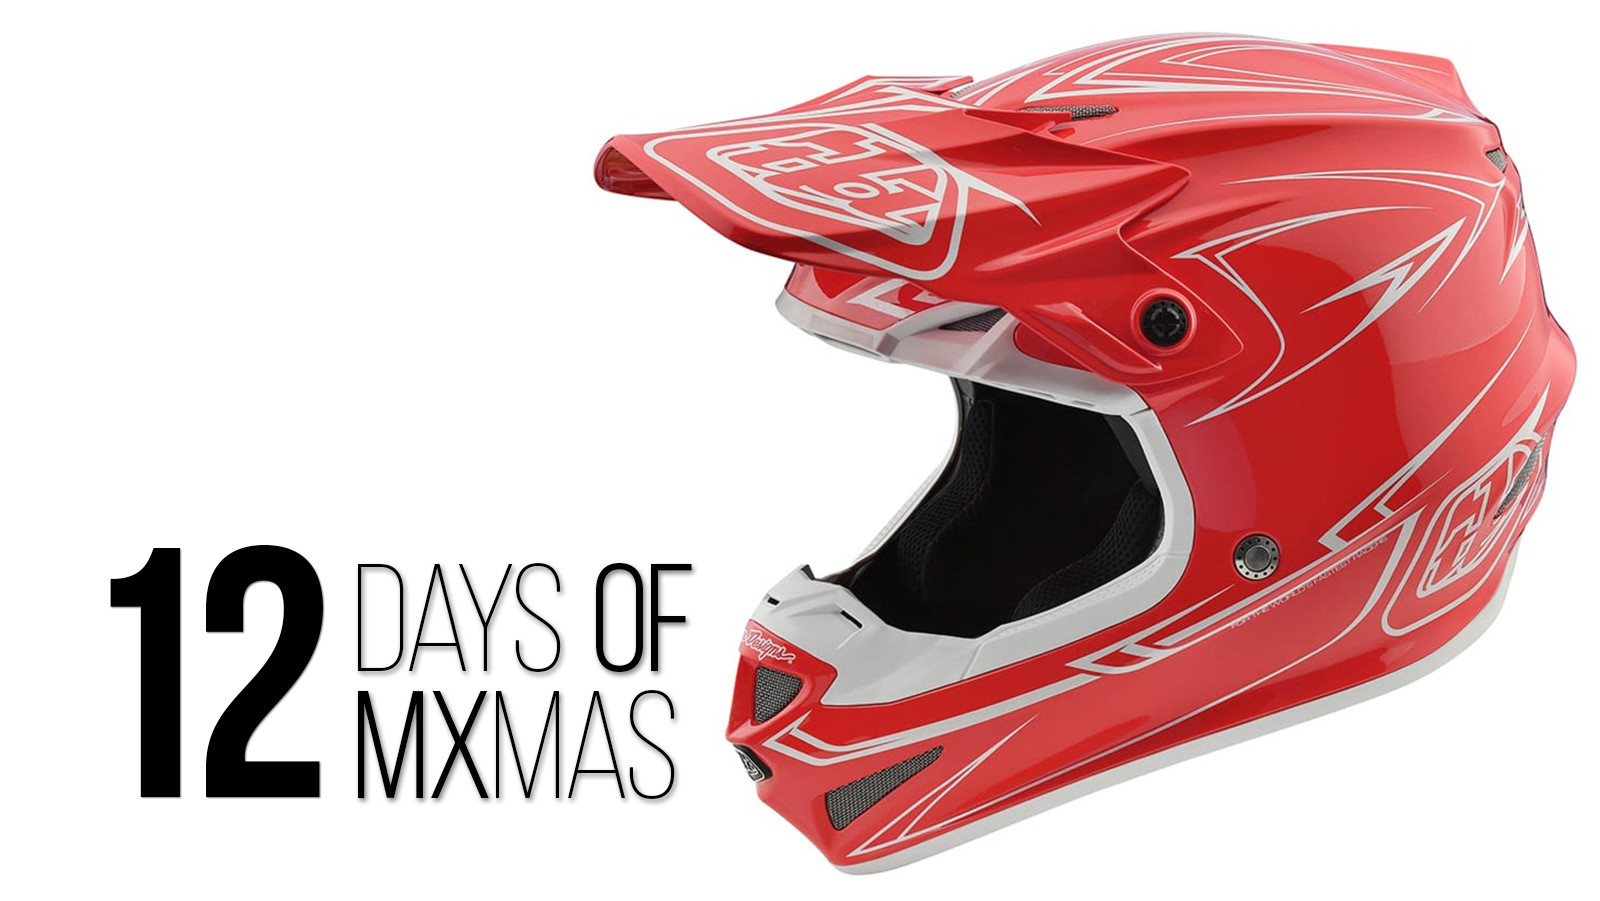 Vital MX 12 Days of MXmas: Day 1